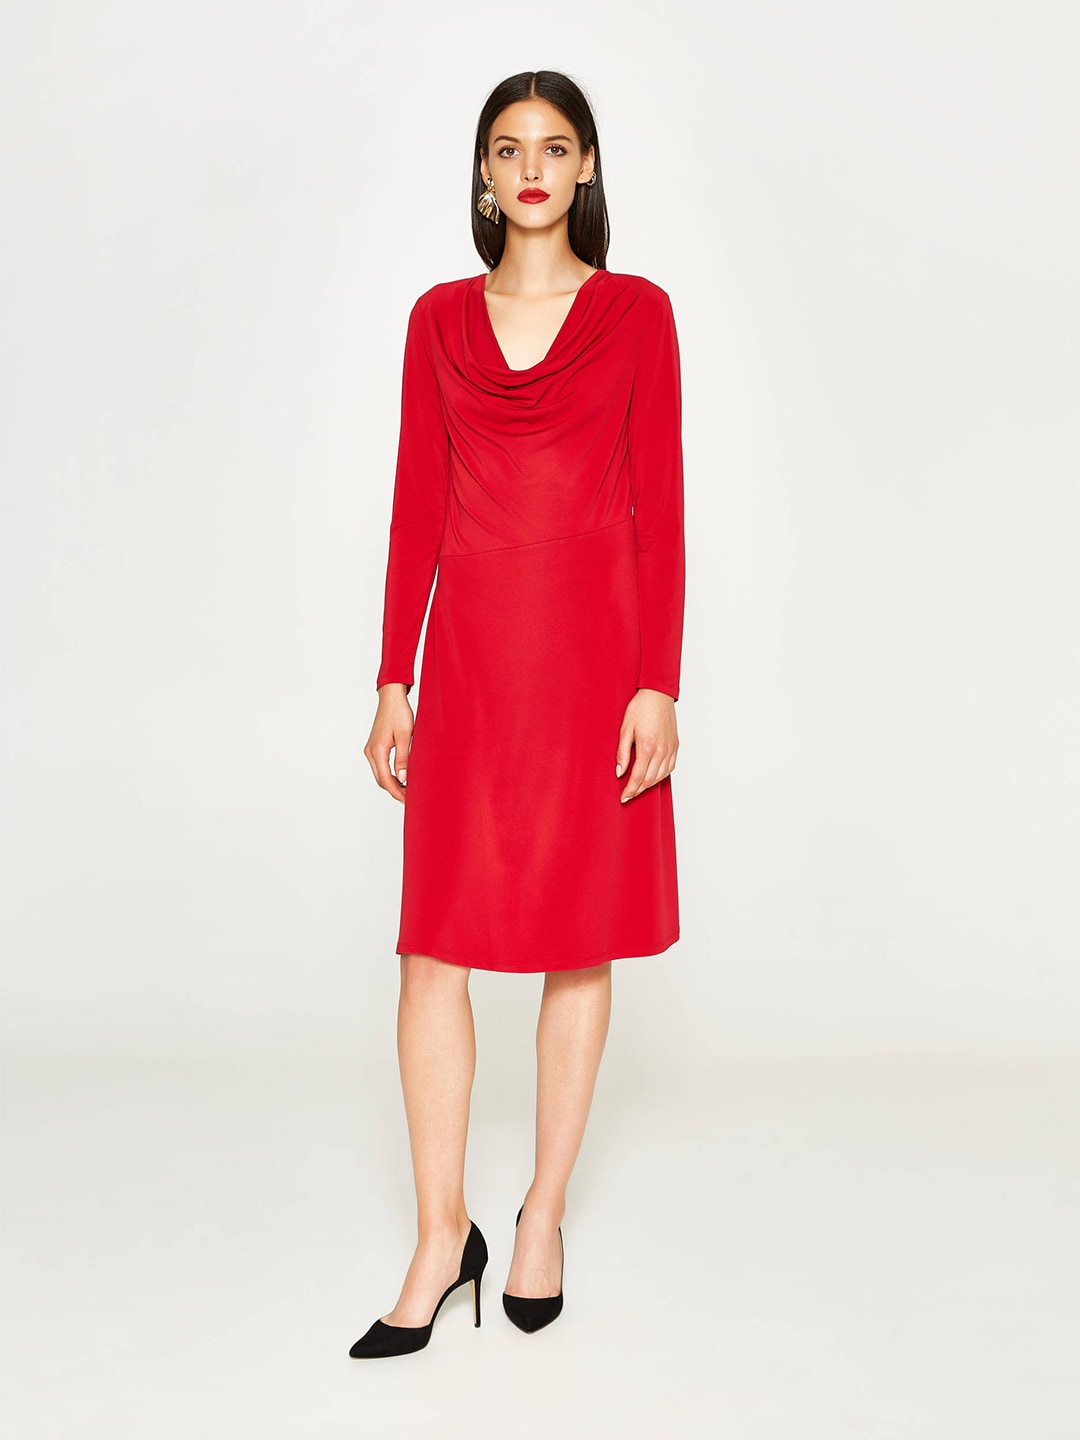 OVS Women Red Solid Fit & Flare Dress image